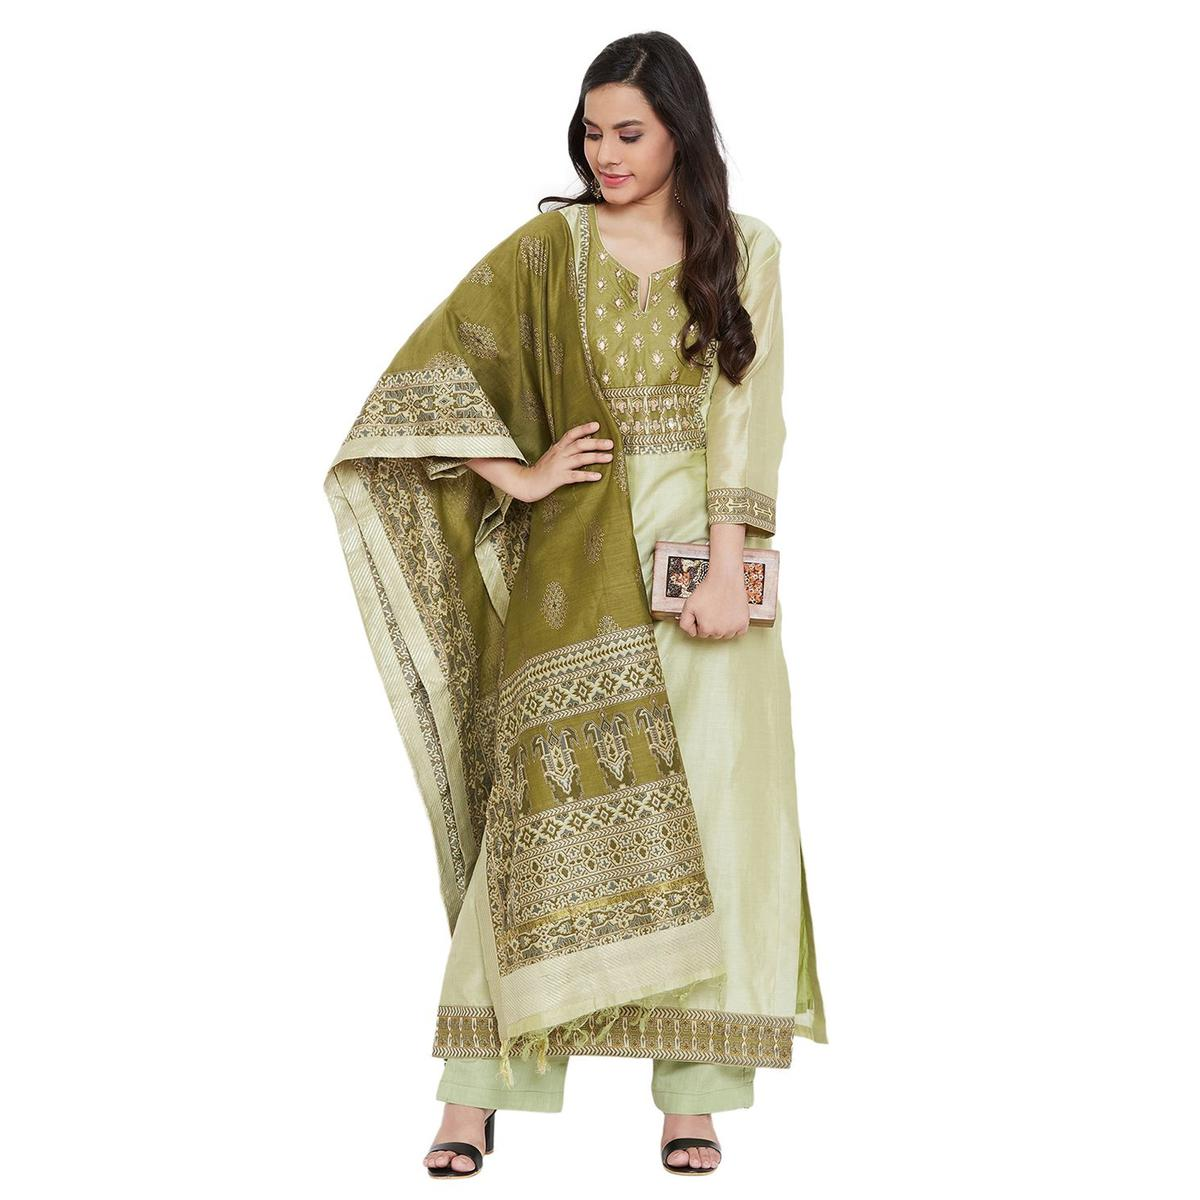 Vastrangana Majesty Green Colored Party Wear Embroiered Silk-Cambric Cotton Paakeeza Dress Material